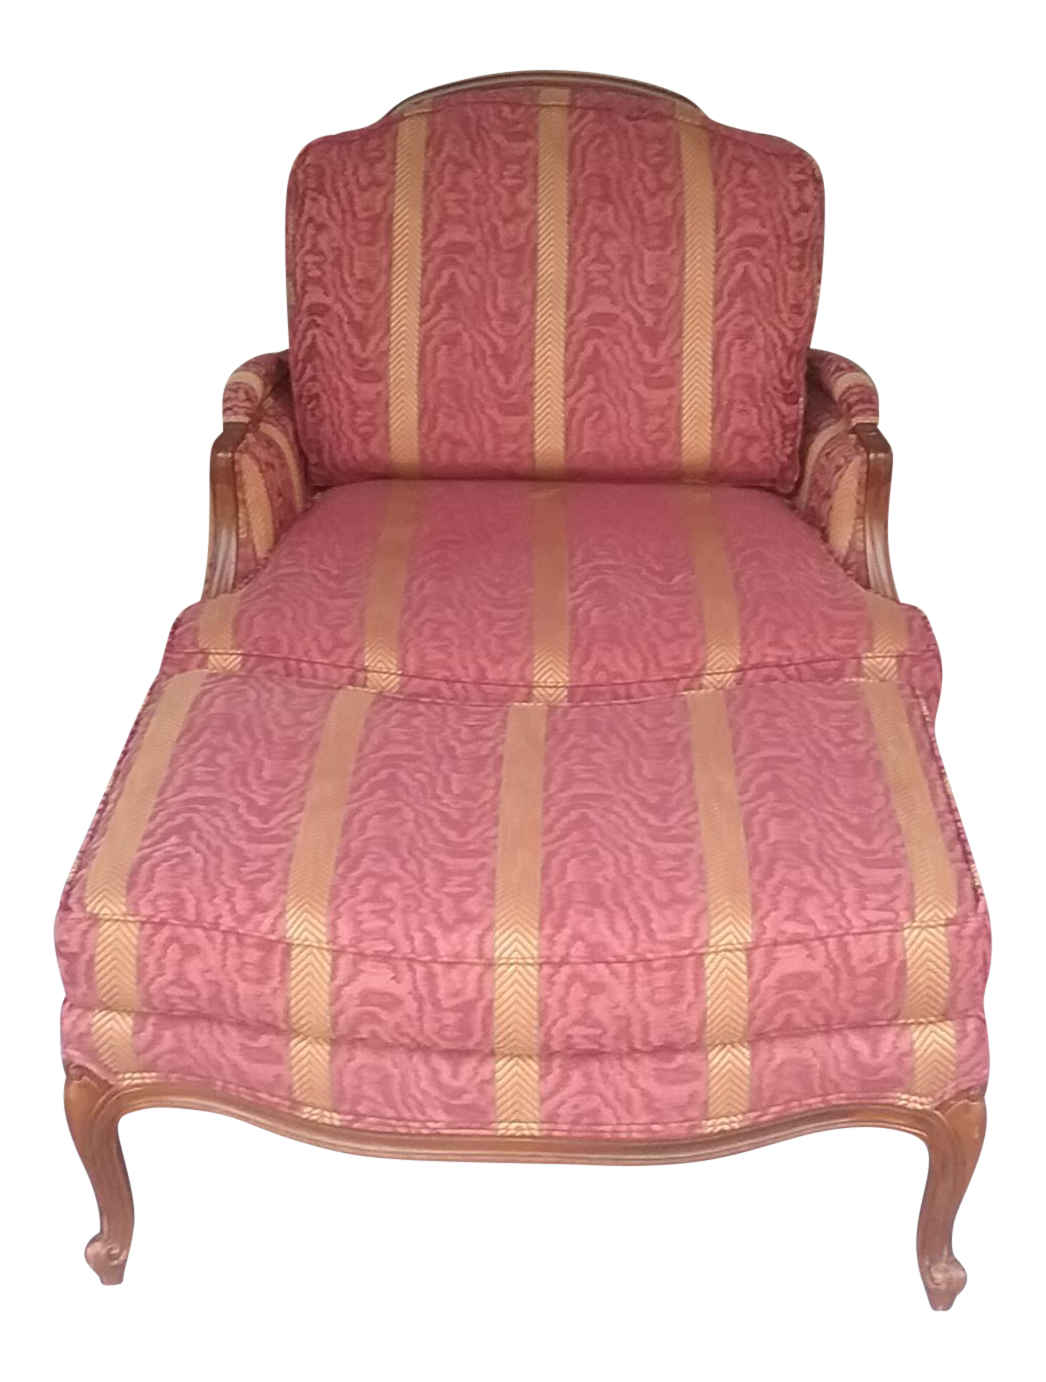 Etonnant Ethan Allen French Bergere Chair U0026 Ottoman On Chairish.com